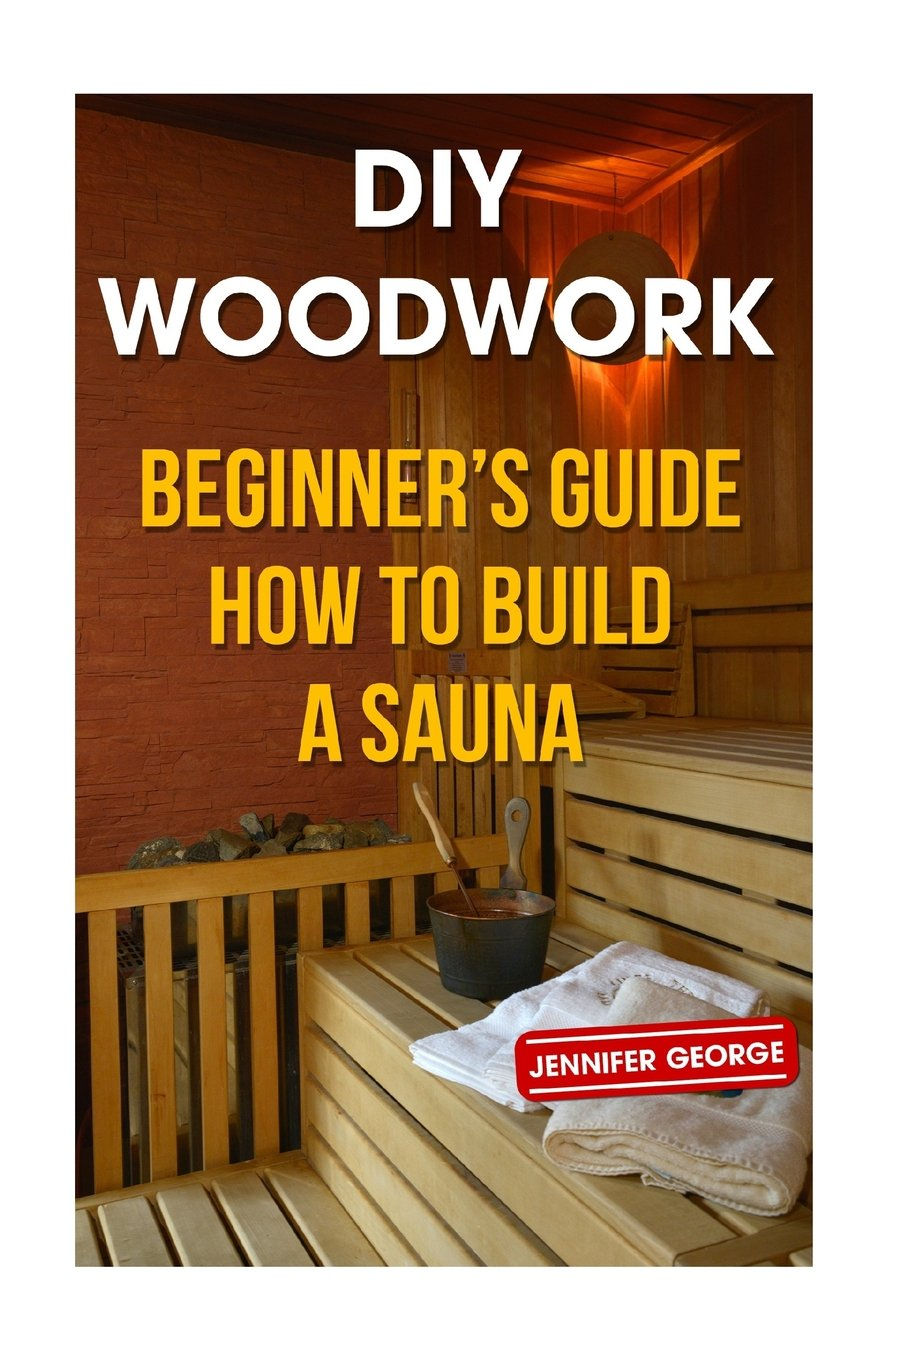 DIY Woodwork: Beginner?s Guide How to Build a Sauna